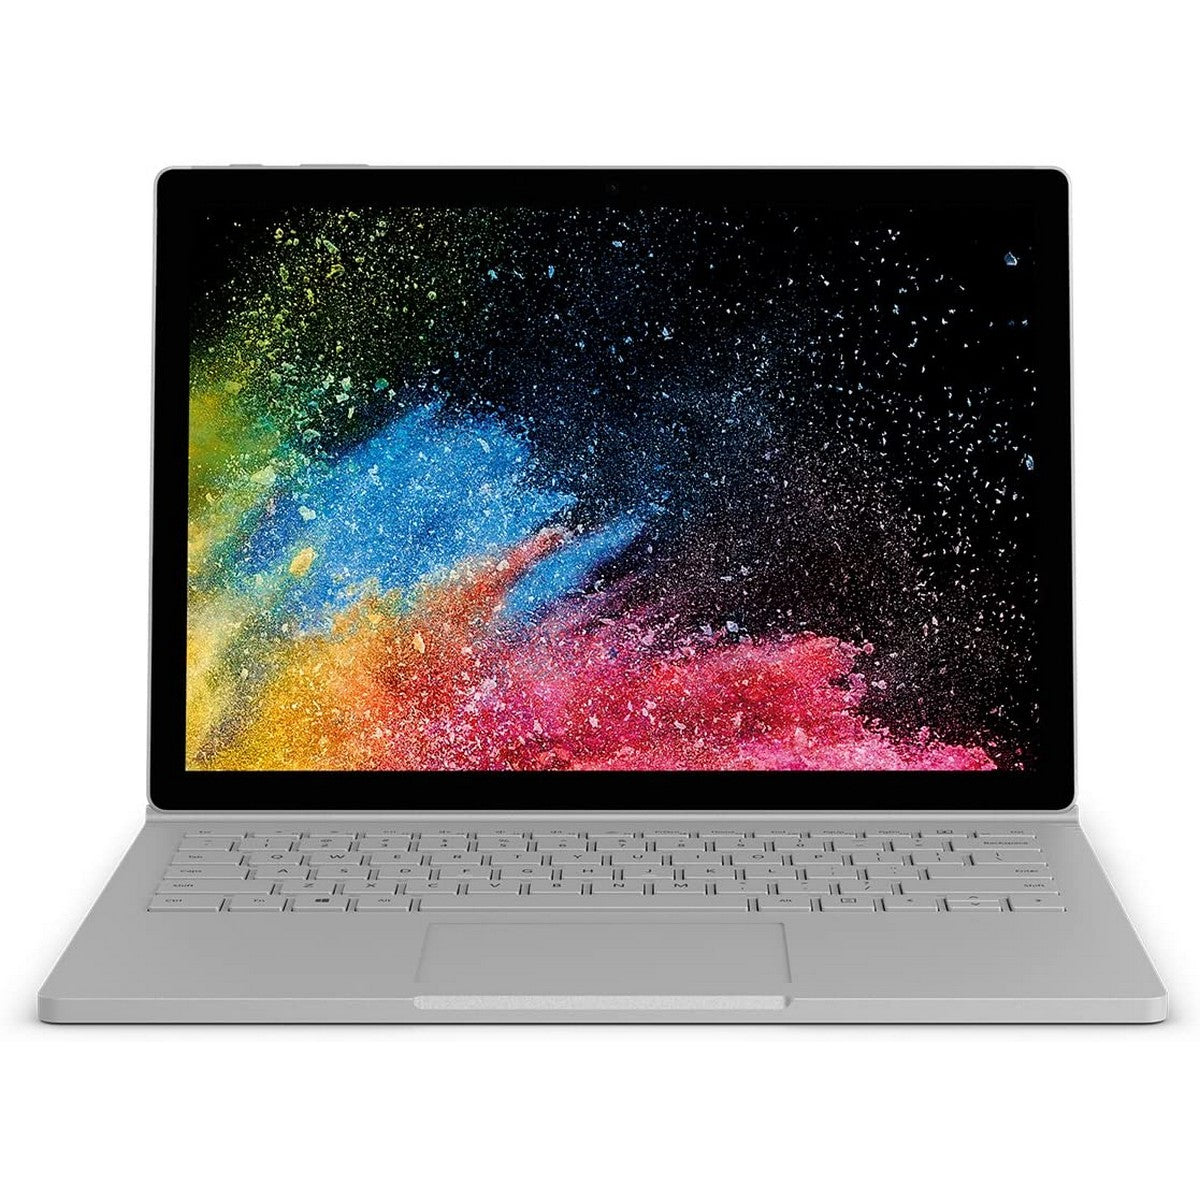 Microsoft Surface Book 2 in 1 Laptop 13.5'' PixelSense , Intel Core i5 i5-6300U 2.4GHz 3M Cache up to 3.0GHz, 8GB RAM, GeForce 940M 1GB GPU, 256GB SSD, Touchscreen, Windows 10, English Keyboard, platinum